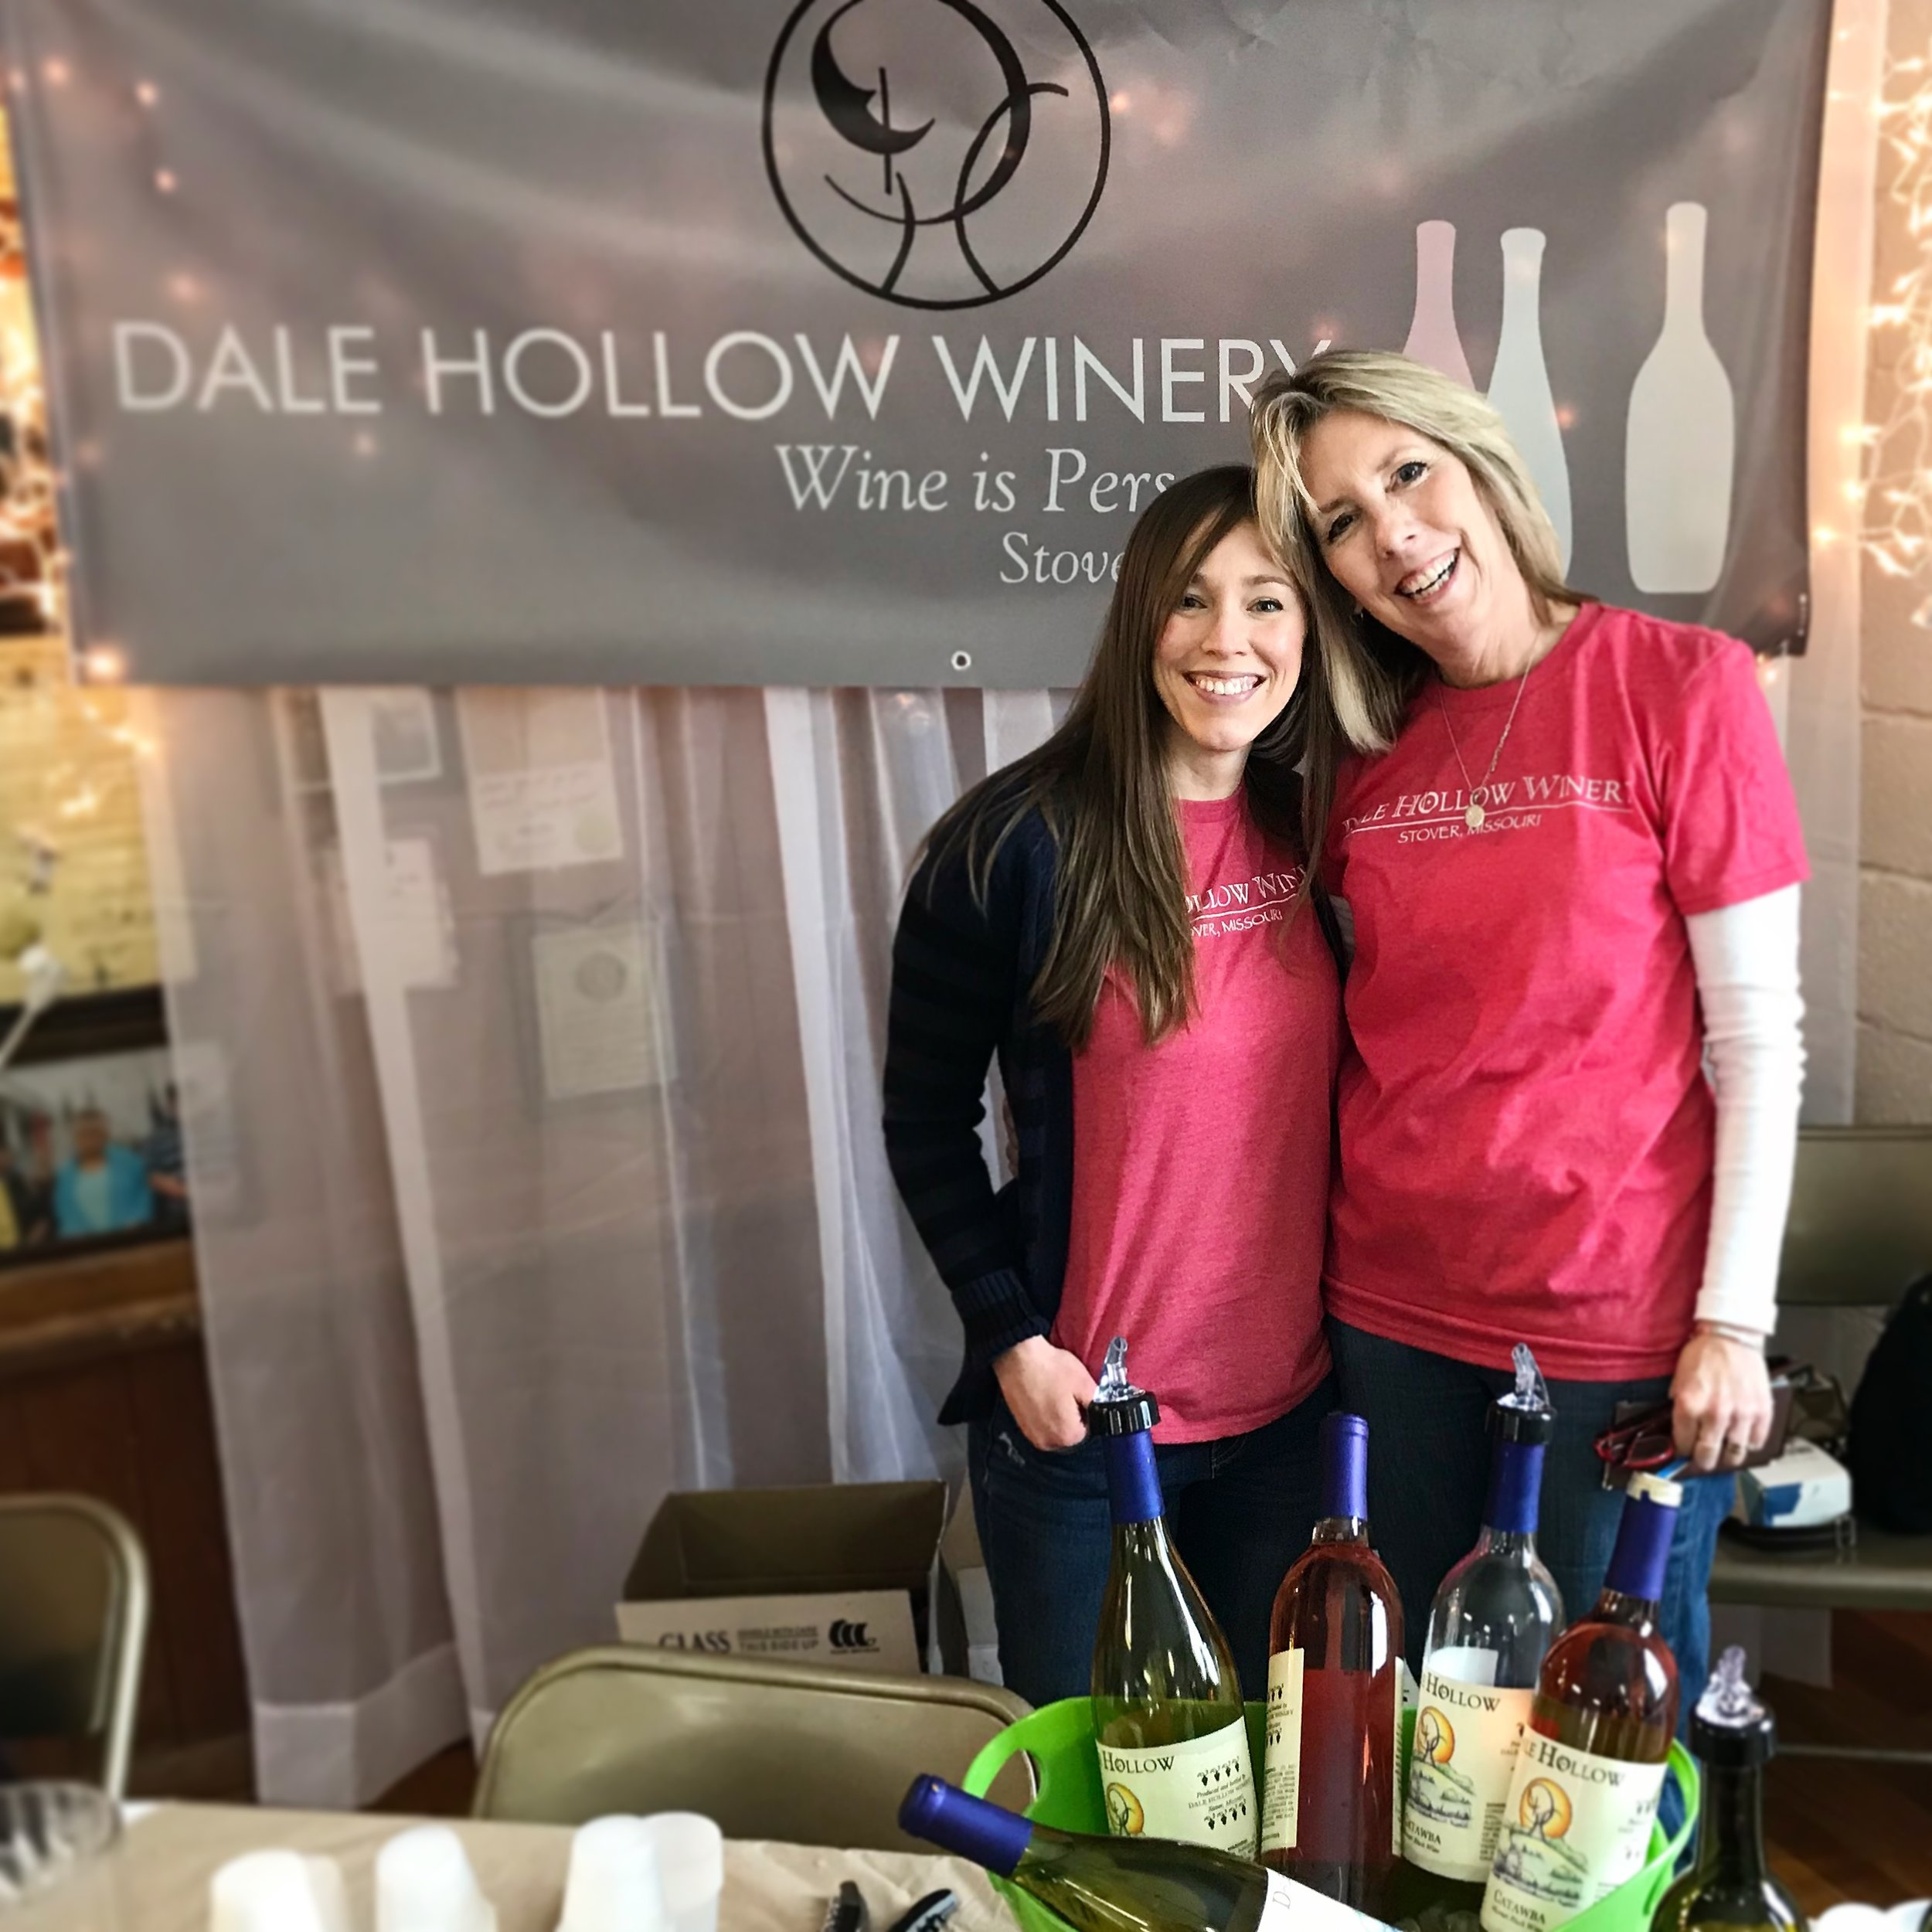 """Offsite Events and Wine Walks - Please contact us if you are interested in featuring us or our wine for an offsite event. We have served at charity events, birthday parties, and weddings. For events that require us to serve, we generally have a minimum wine order requirement. Please contact us to discuss your idea for the event and pricing.Cities and groups hosting wine walks- please contact us by phone or email if you are interested in featuring us in your """"wine walk"""" or """"sip and shop"""" event."""